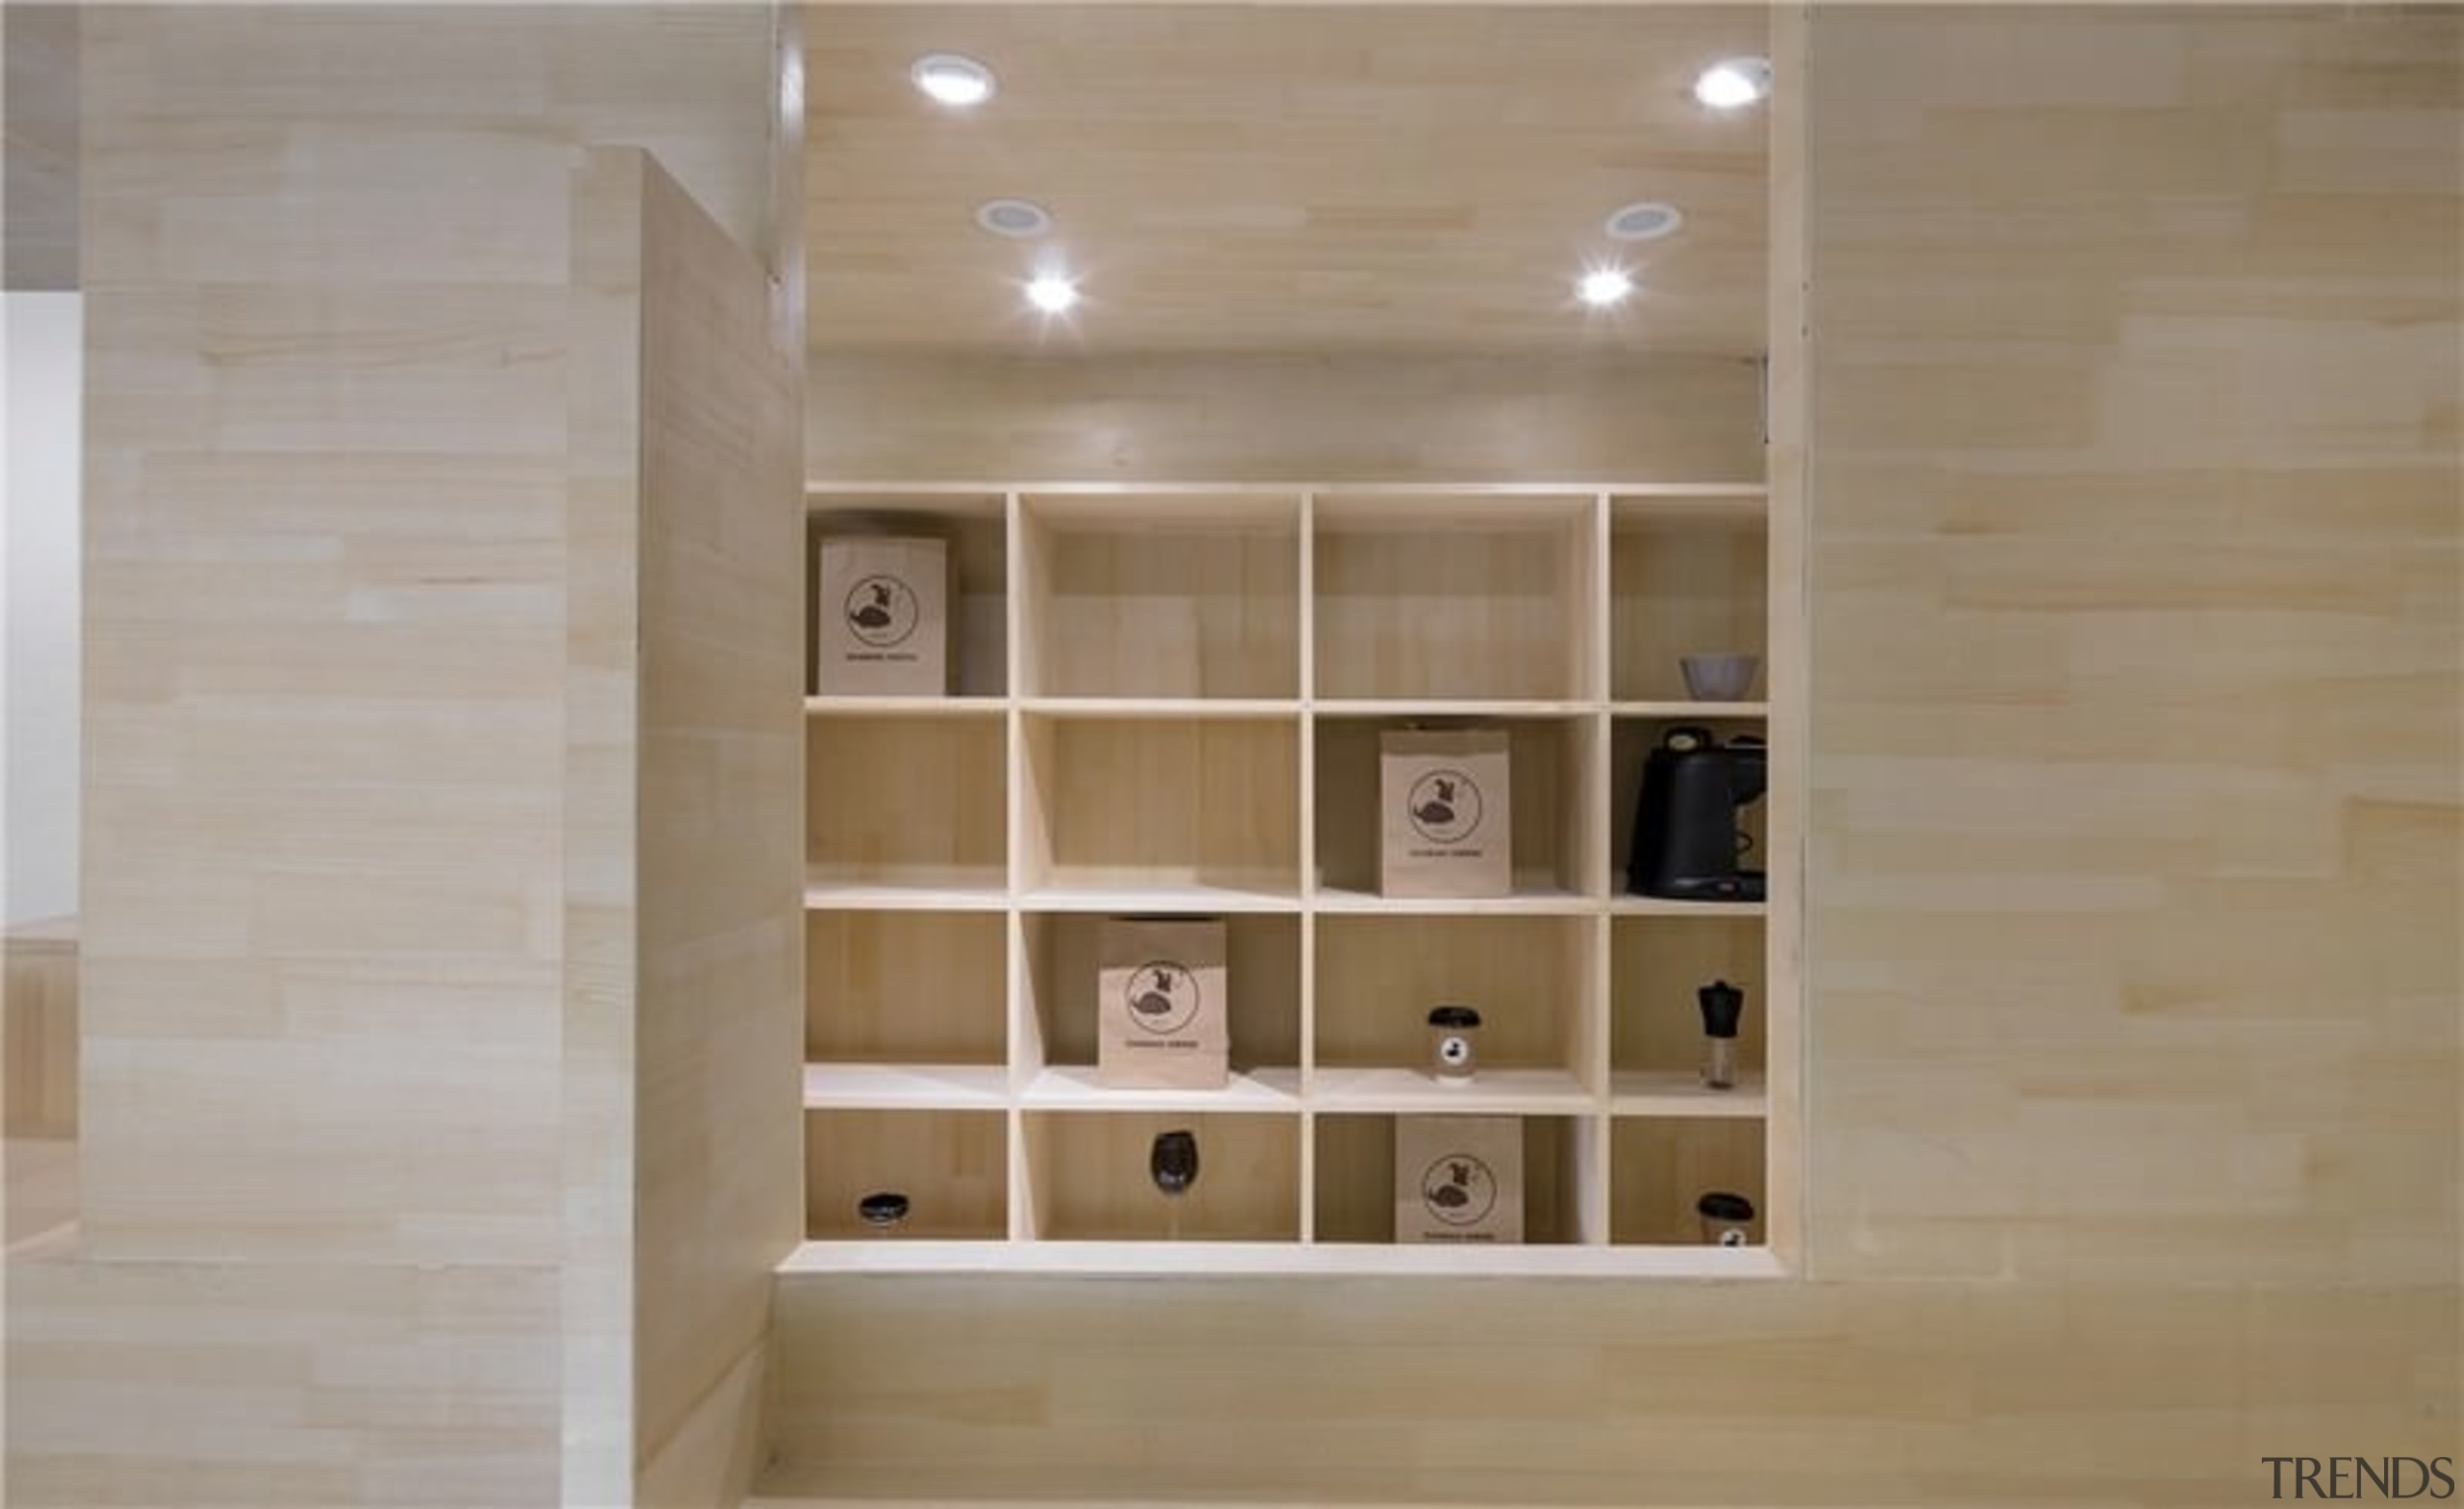 The wood creates a soft space - The bookcase, cabinetry, floor, flooring, furniture, hardwood, interior design, plywood, shelf, shelving, tile, wall, wood, wood flooring, gray, brown